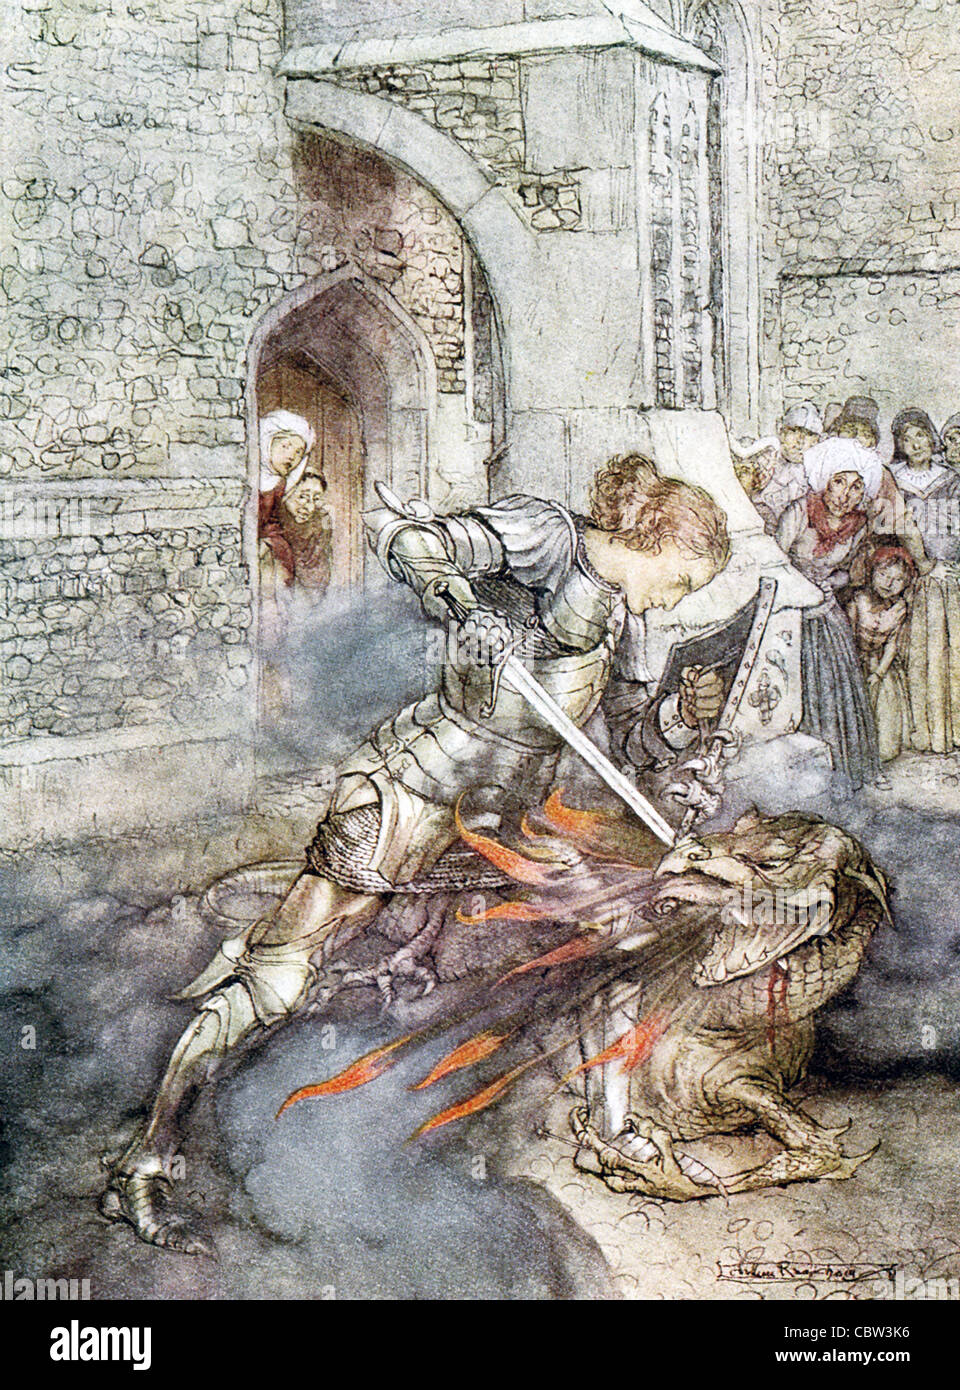 In Arthurian legend, Lancelot (shown here) and Tristan are both knights of the Round Table and dragon slayers. - Stock Image